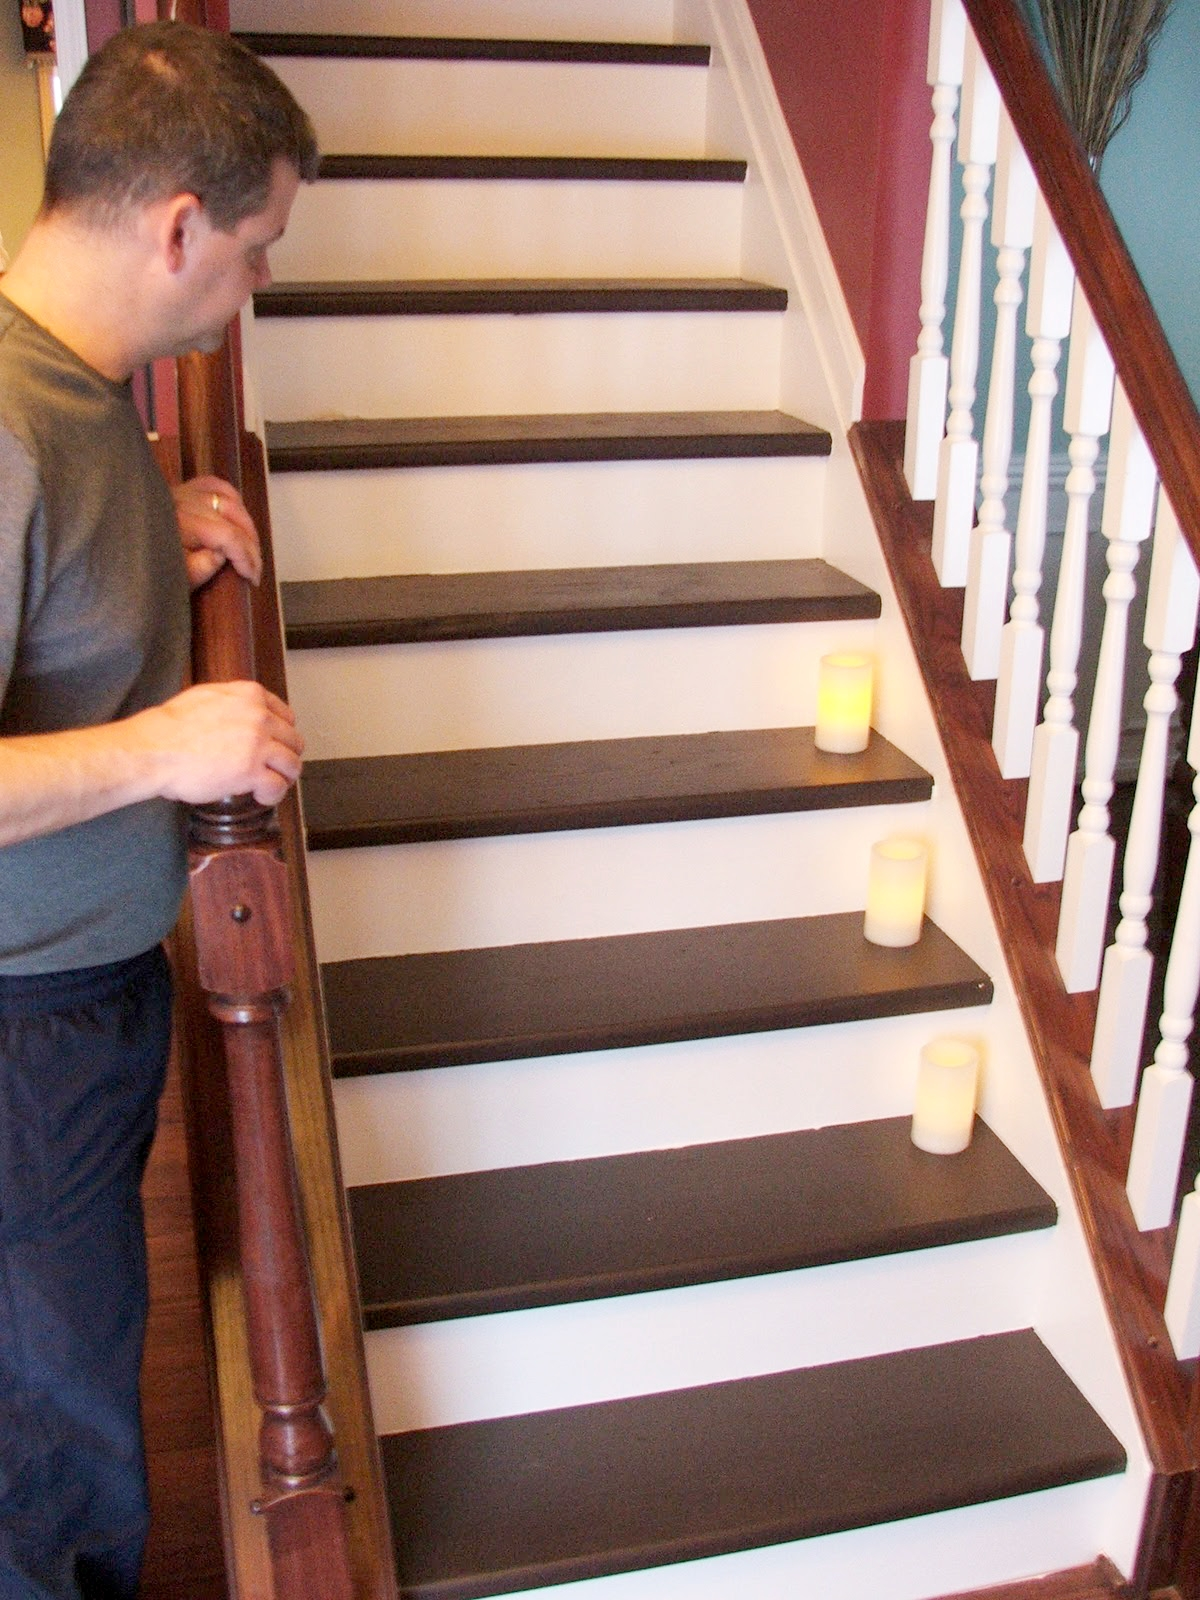 Remodelaholic Under 100 Carpeted Stair To Wooden Tread Makeover Diy Regarding Carpet Treads For Wooden Stairs (View 3 of 15)